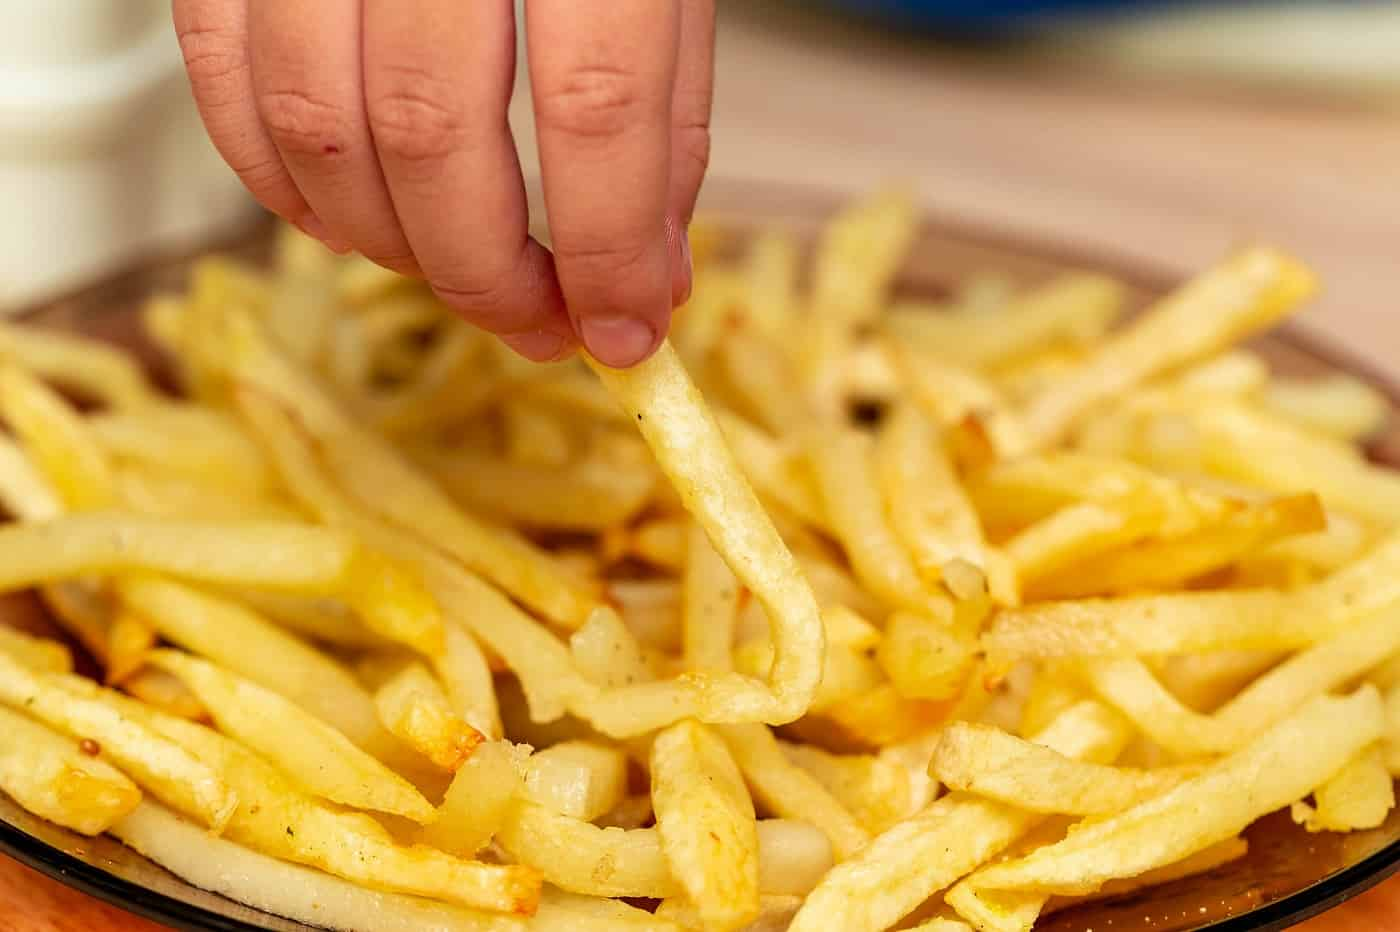 Person's hand reaching for French Fries - Real food vs. fake food